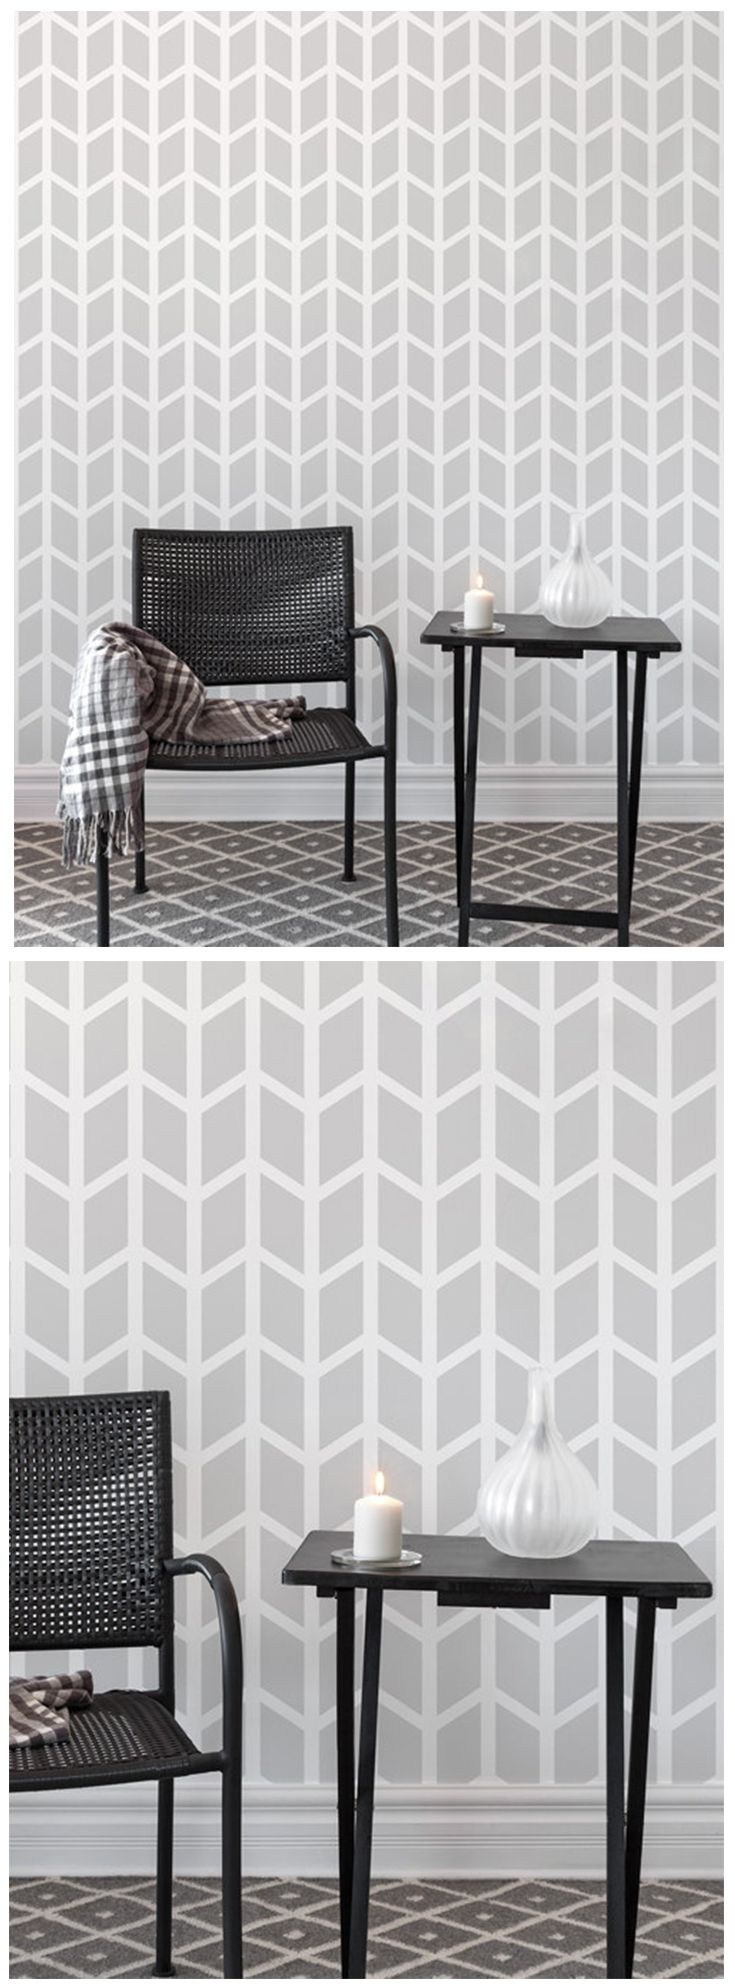 94 best wall stencils images on pinterest wall stenciling chevron geometric pattern wall stencil for interior wall decor more amipublicfo Image collections